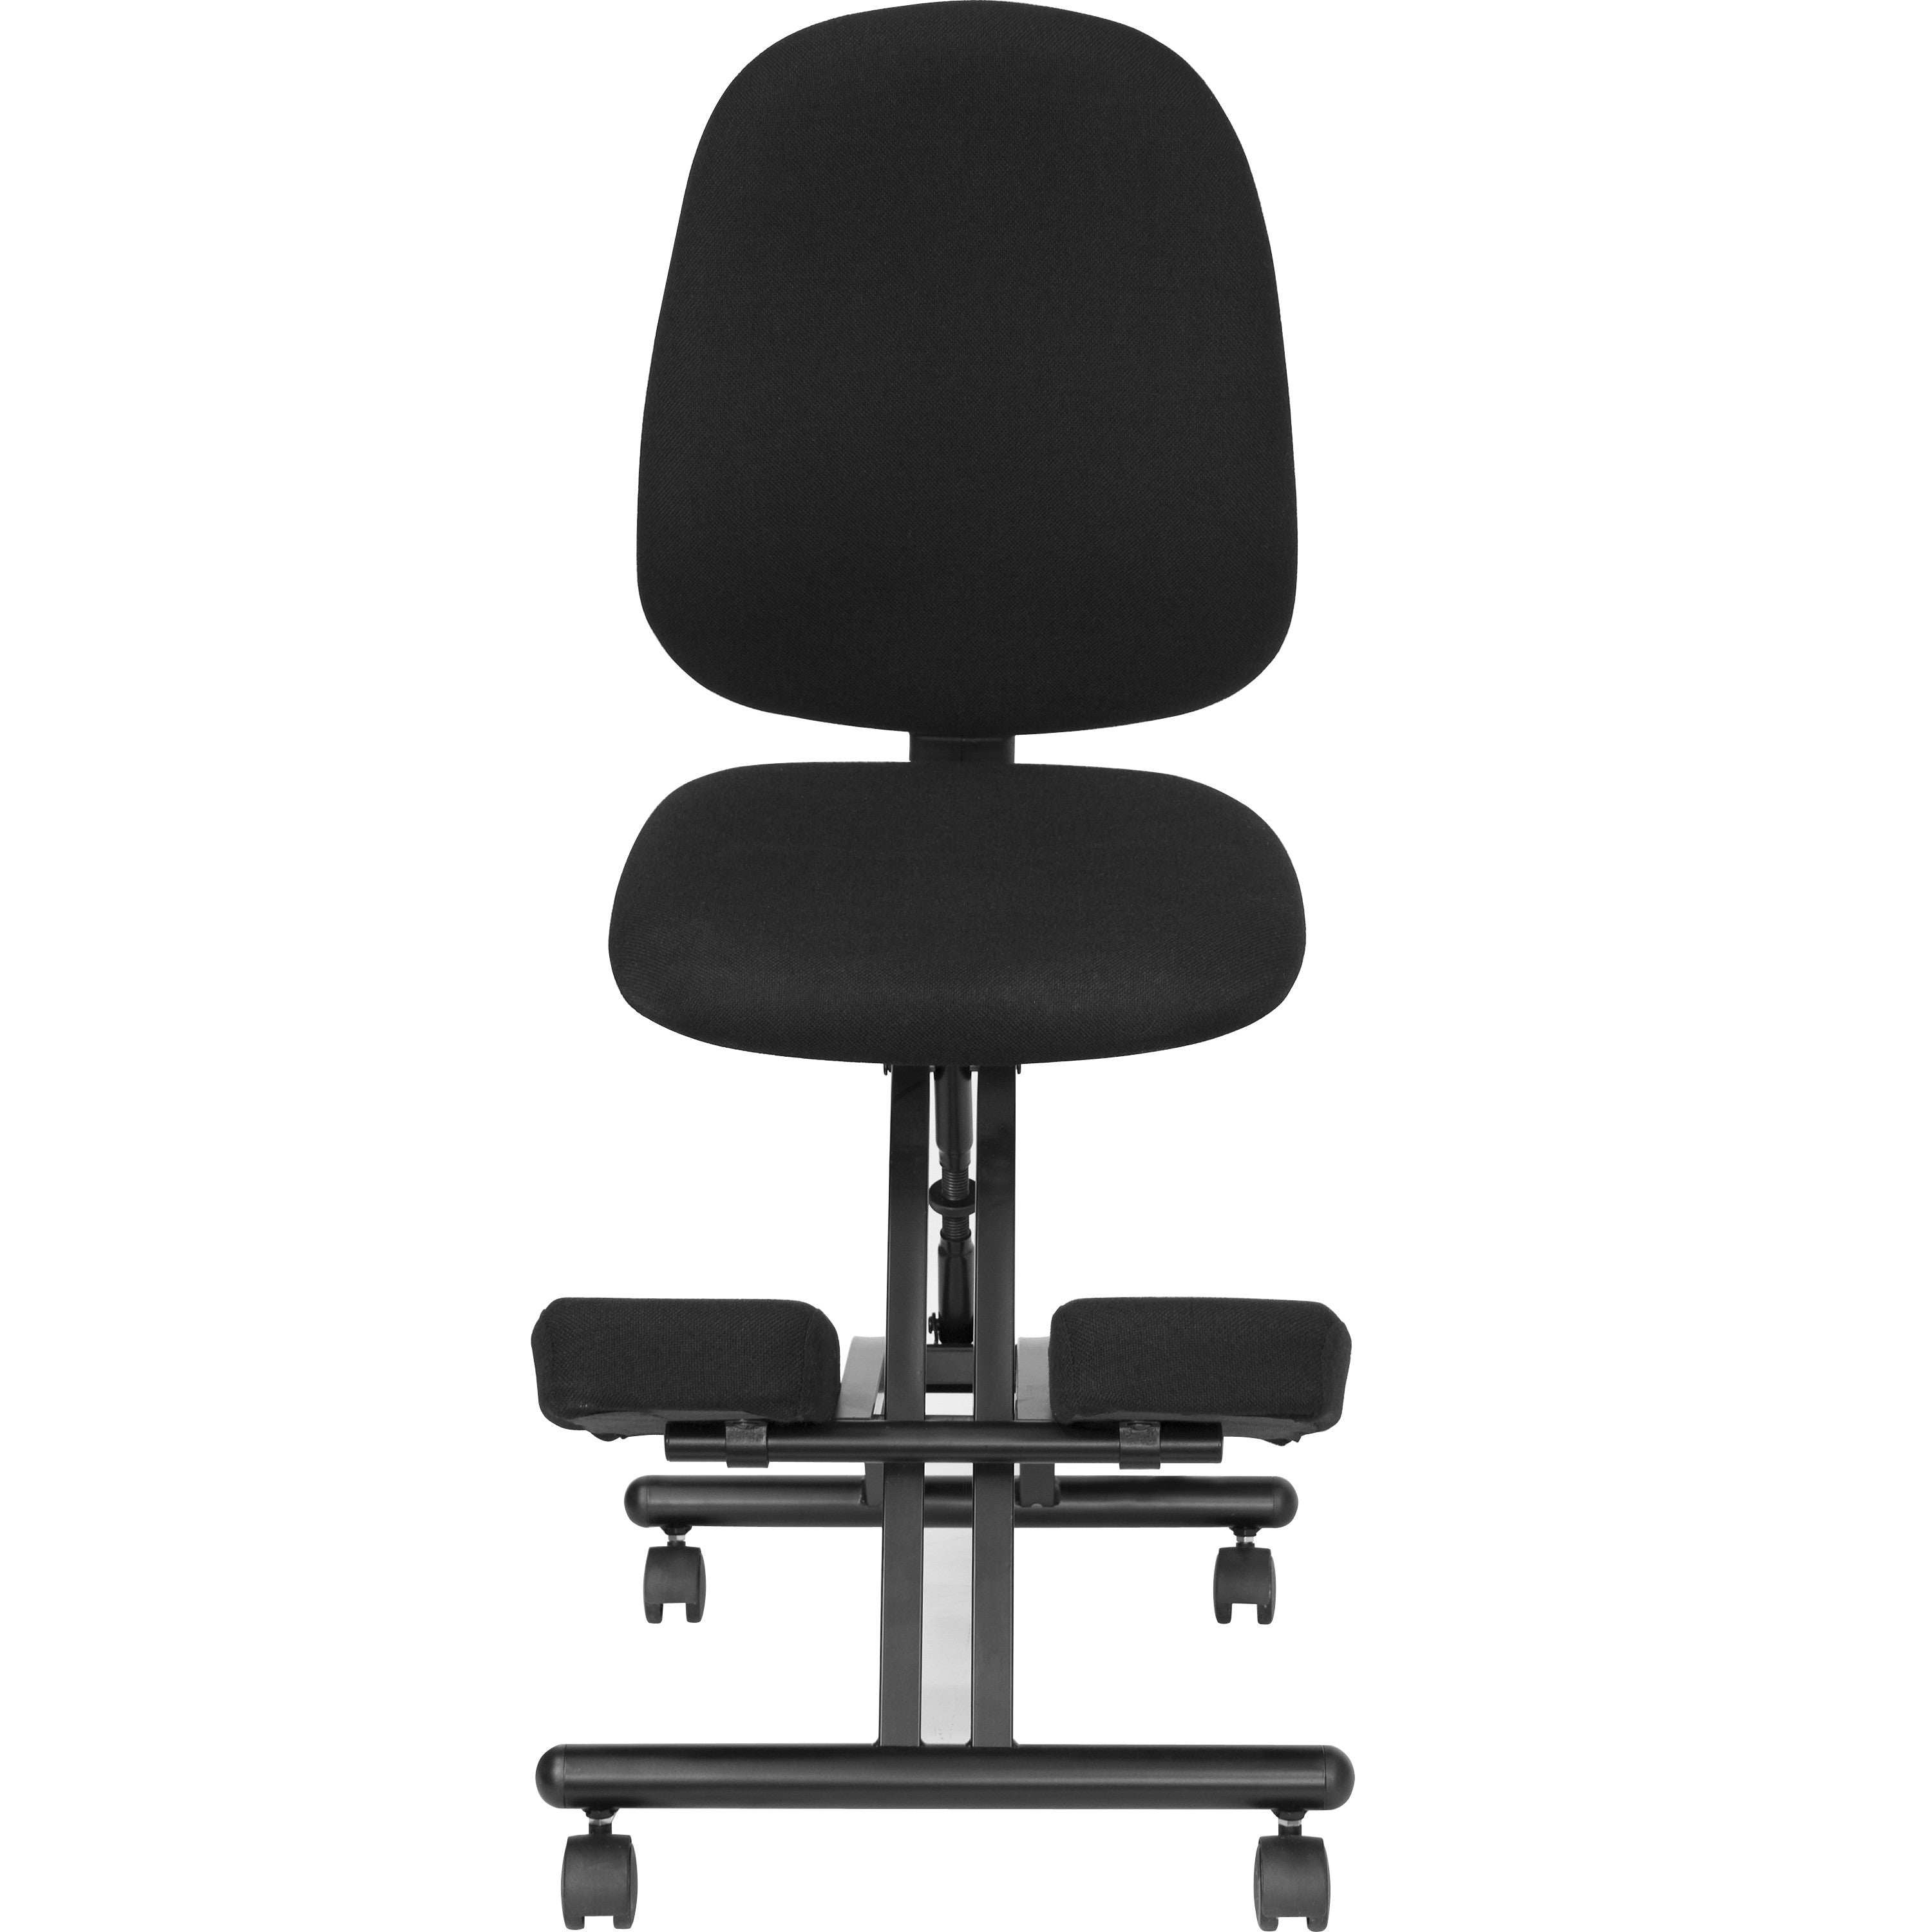 Band posture chair - Mobile Ergonomic Kneeling Posture Chair With Back In Black Fabric